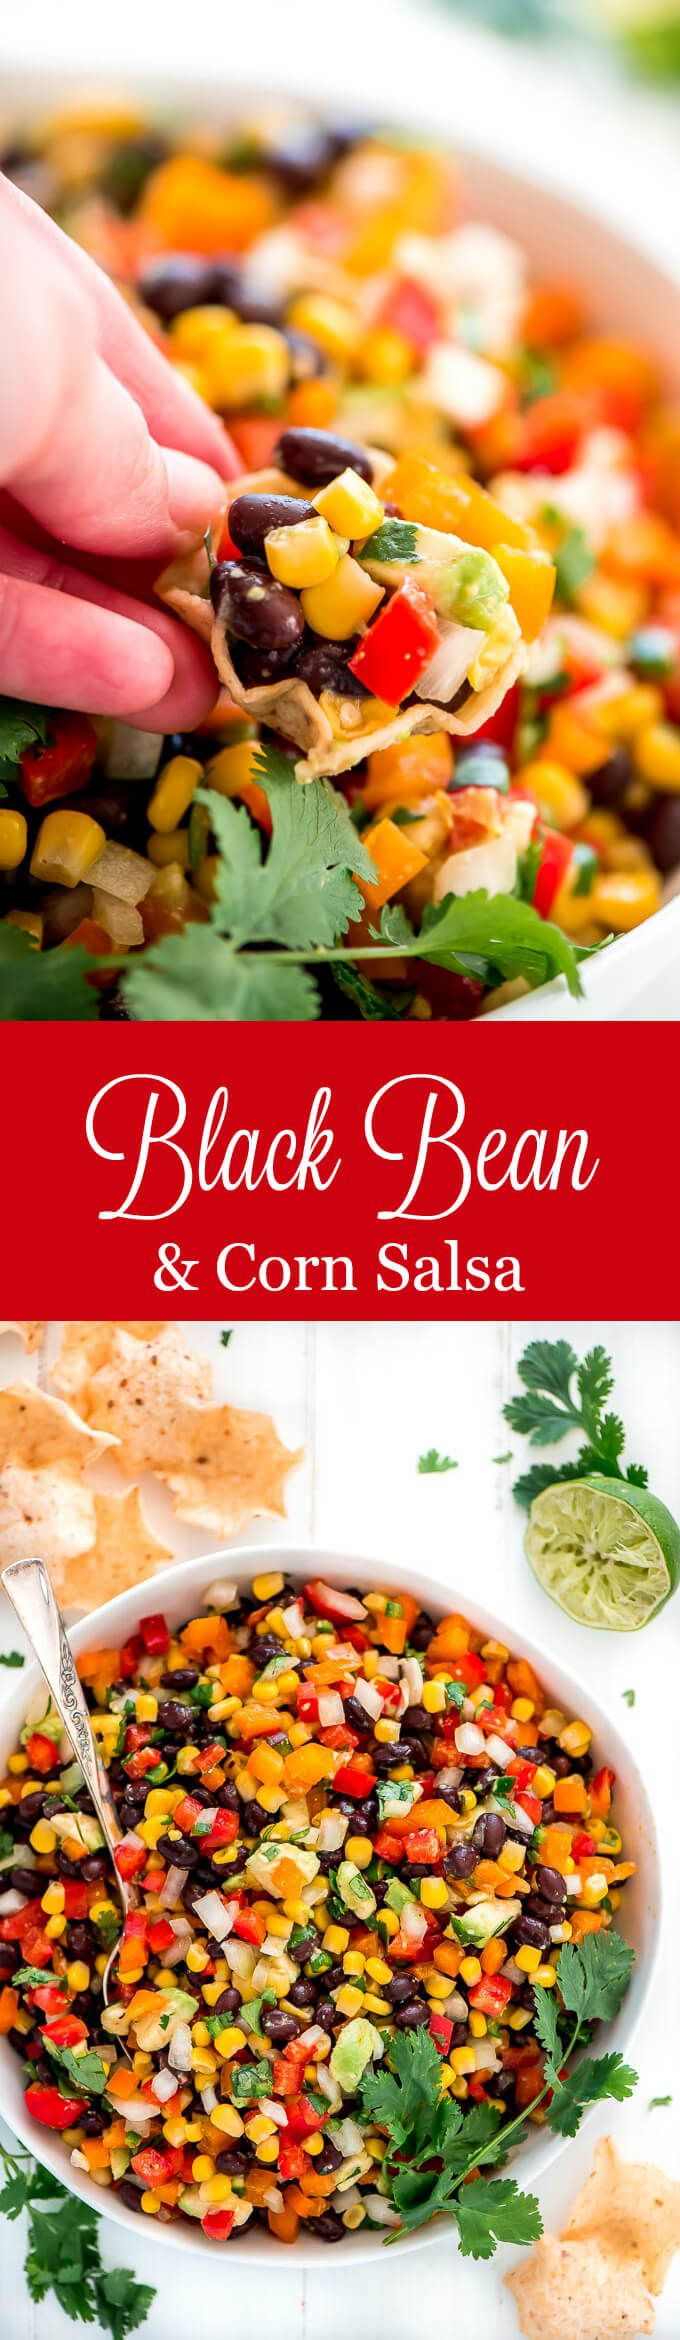 Black Bean and Corn Salsa is an easy 10 minute dip that is down right delicious and healthy. Serve it at your next party or for an afternoon snack.